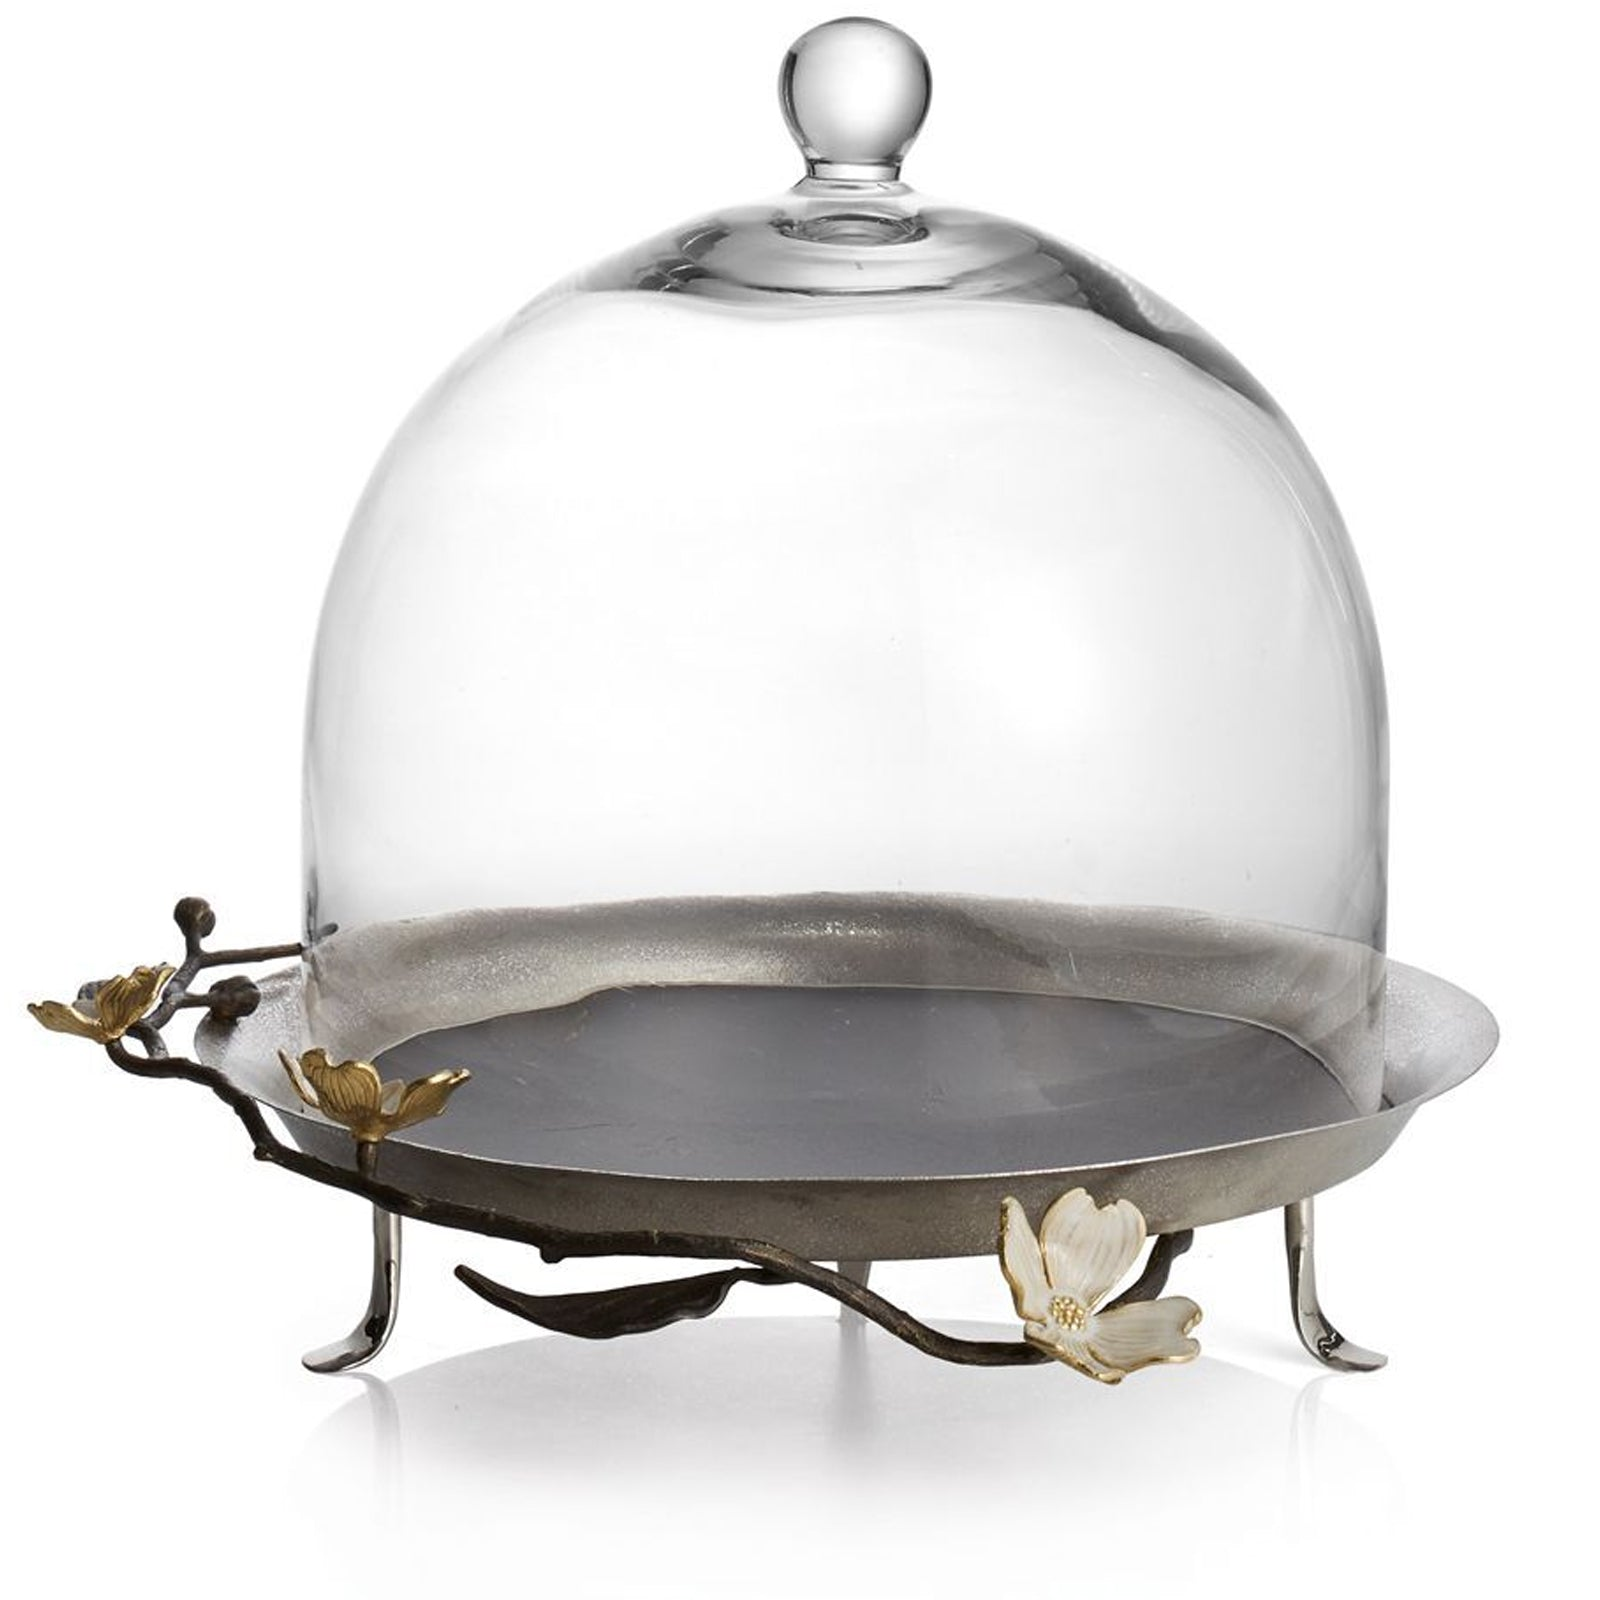 Dogwood Pastry Dome by Michael Aram on LuxDeco.com